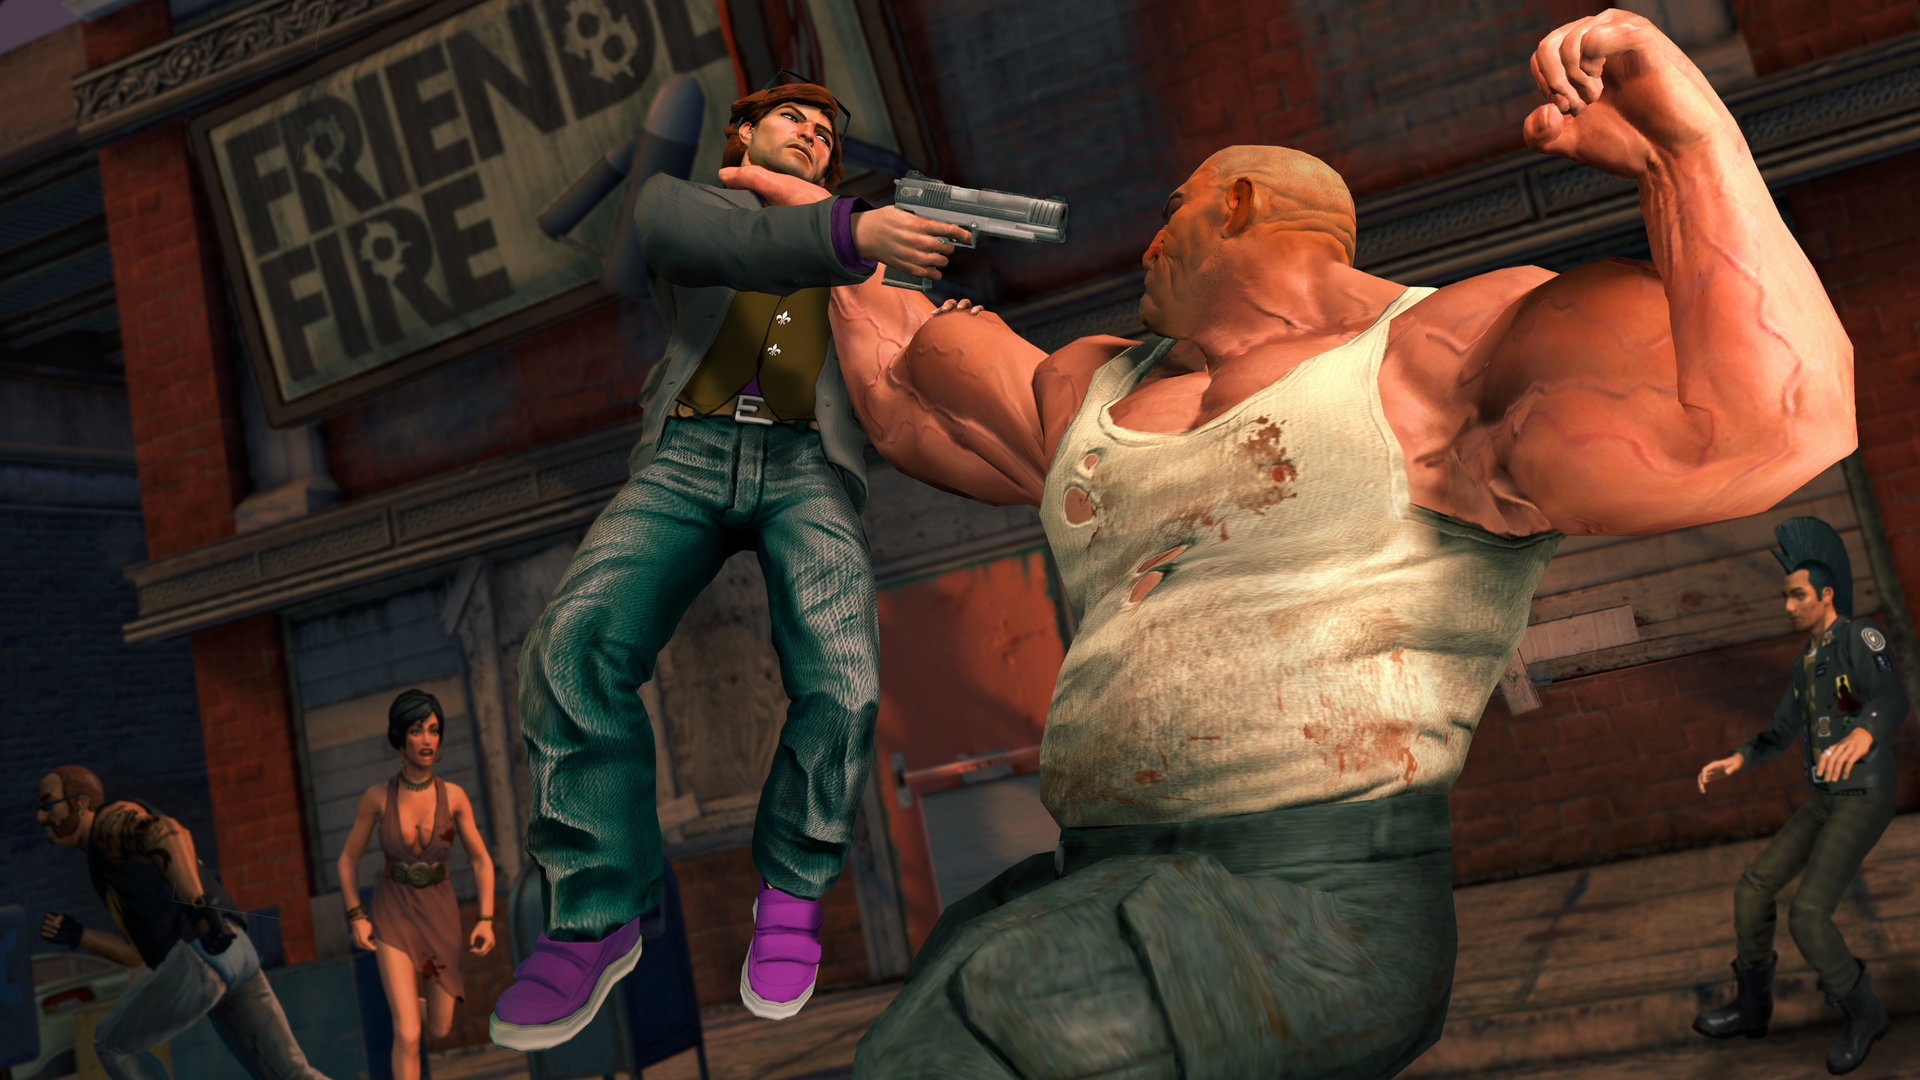 helicopter cheats for saints row the third with Famous Voices In Saints Row The Third on Henry Steel Mills Takeover Locations together with Saintsbook Assassinations moreover Saints Row 3 All Cheats Cheat Codes Xbox360ps3 Video a7816de34 in addition Ho Ing moreover Saintsrowcheatscodes.